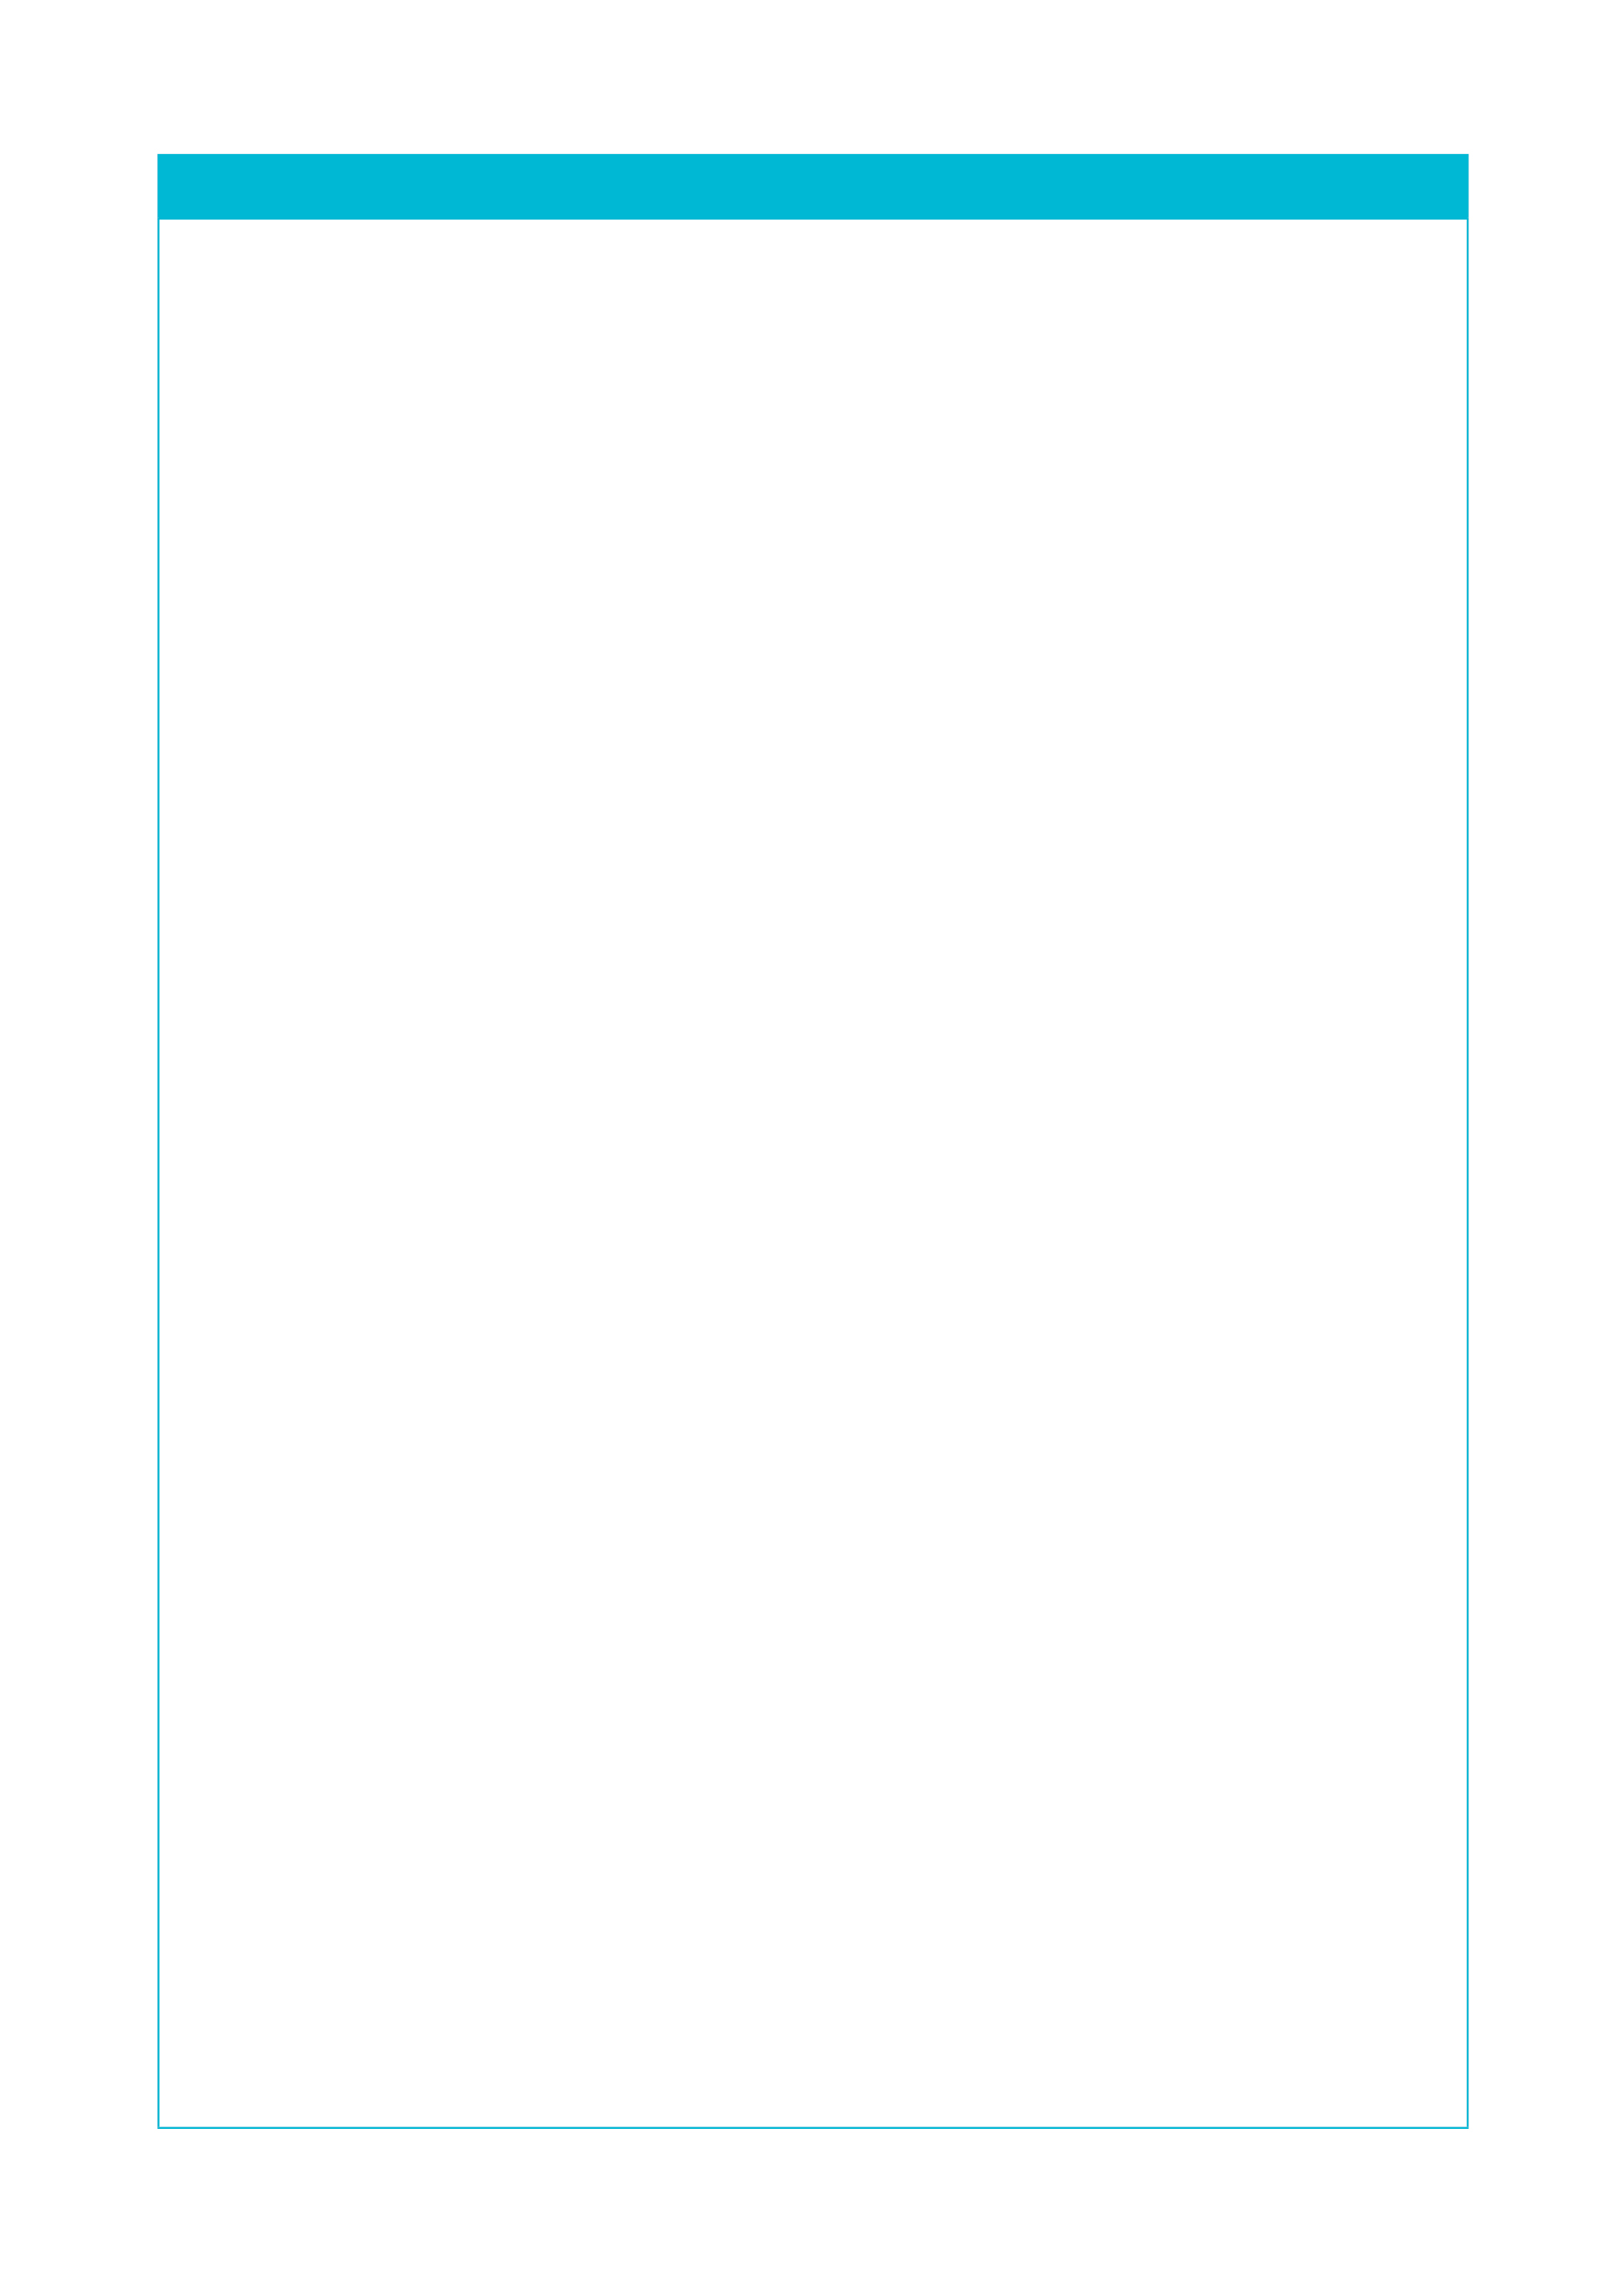 Policies - Blank Policy Page Plain